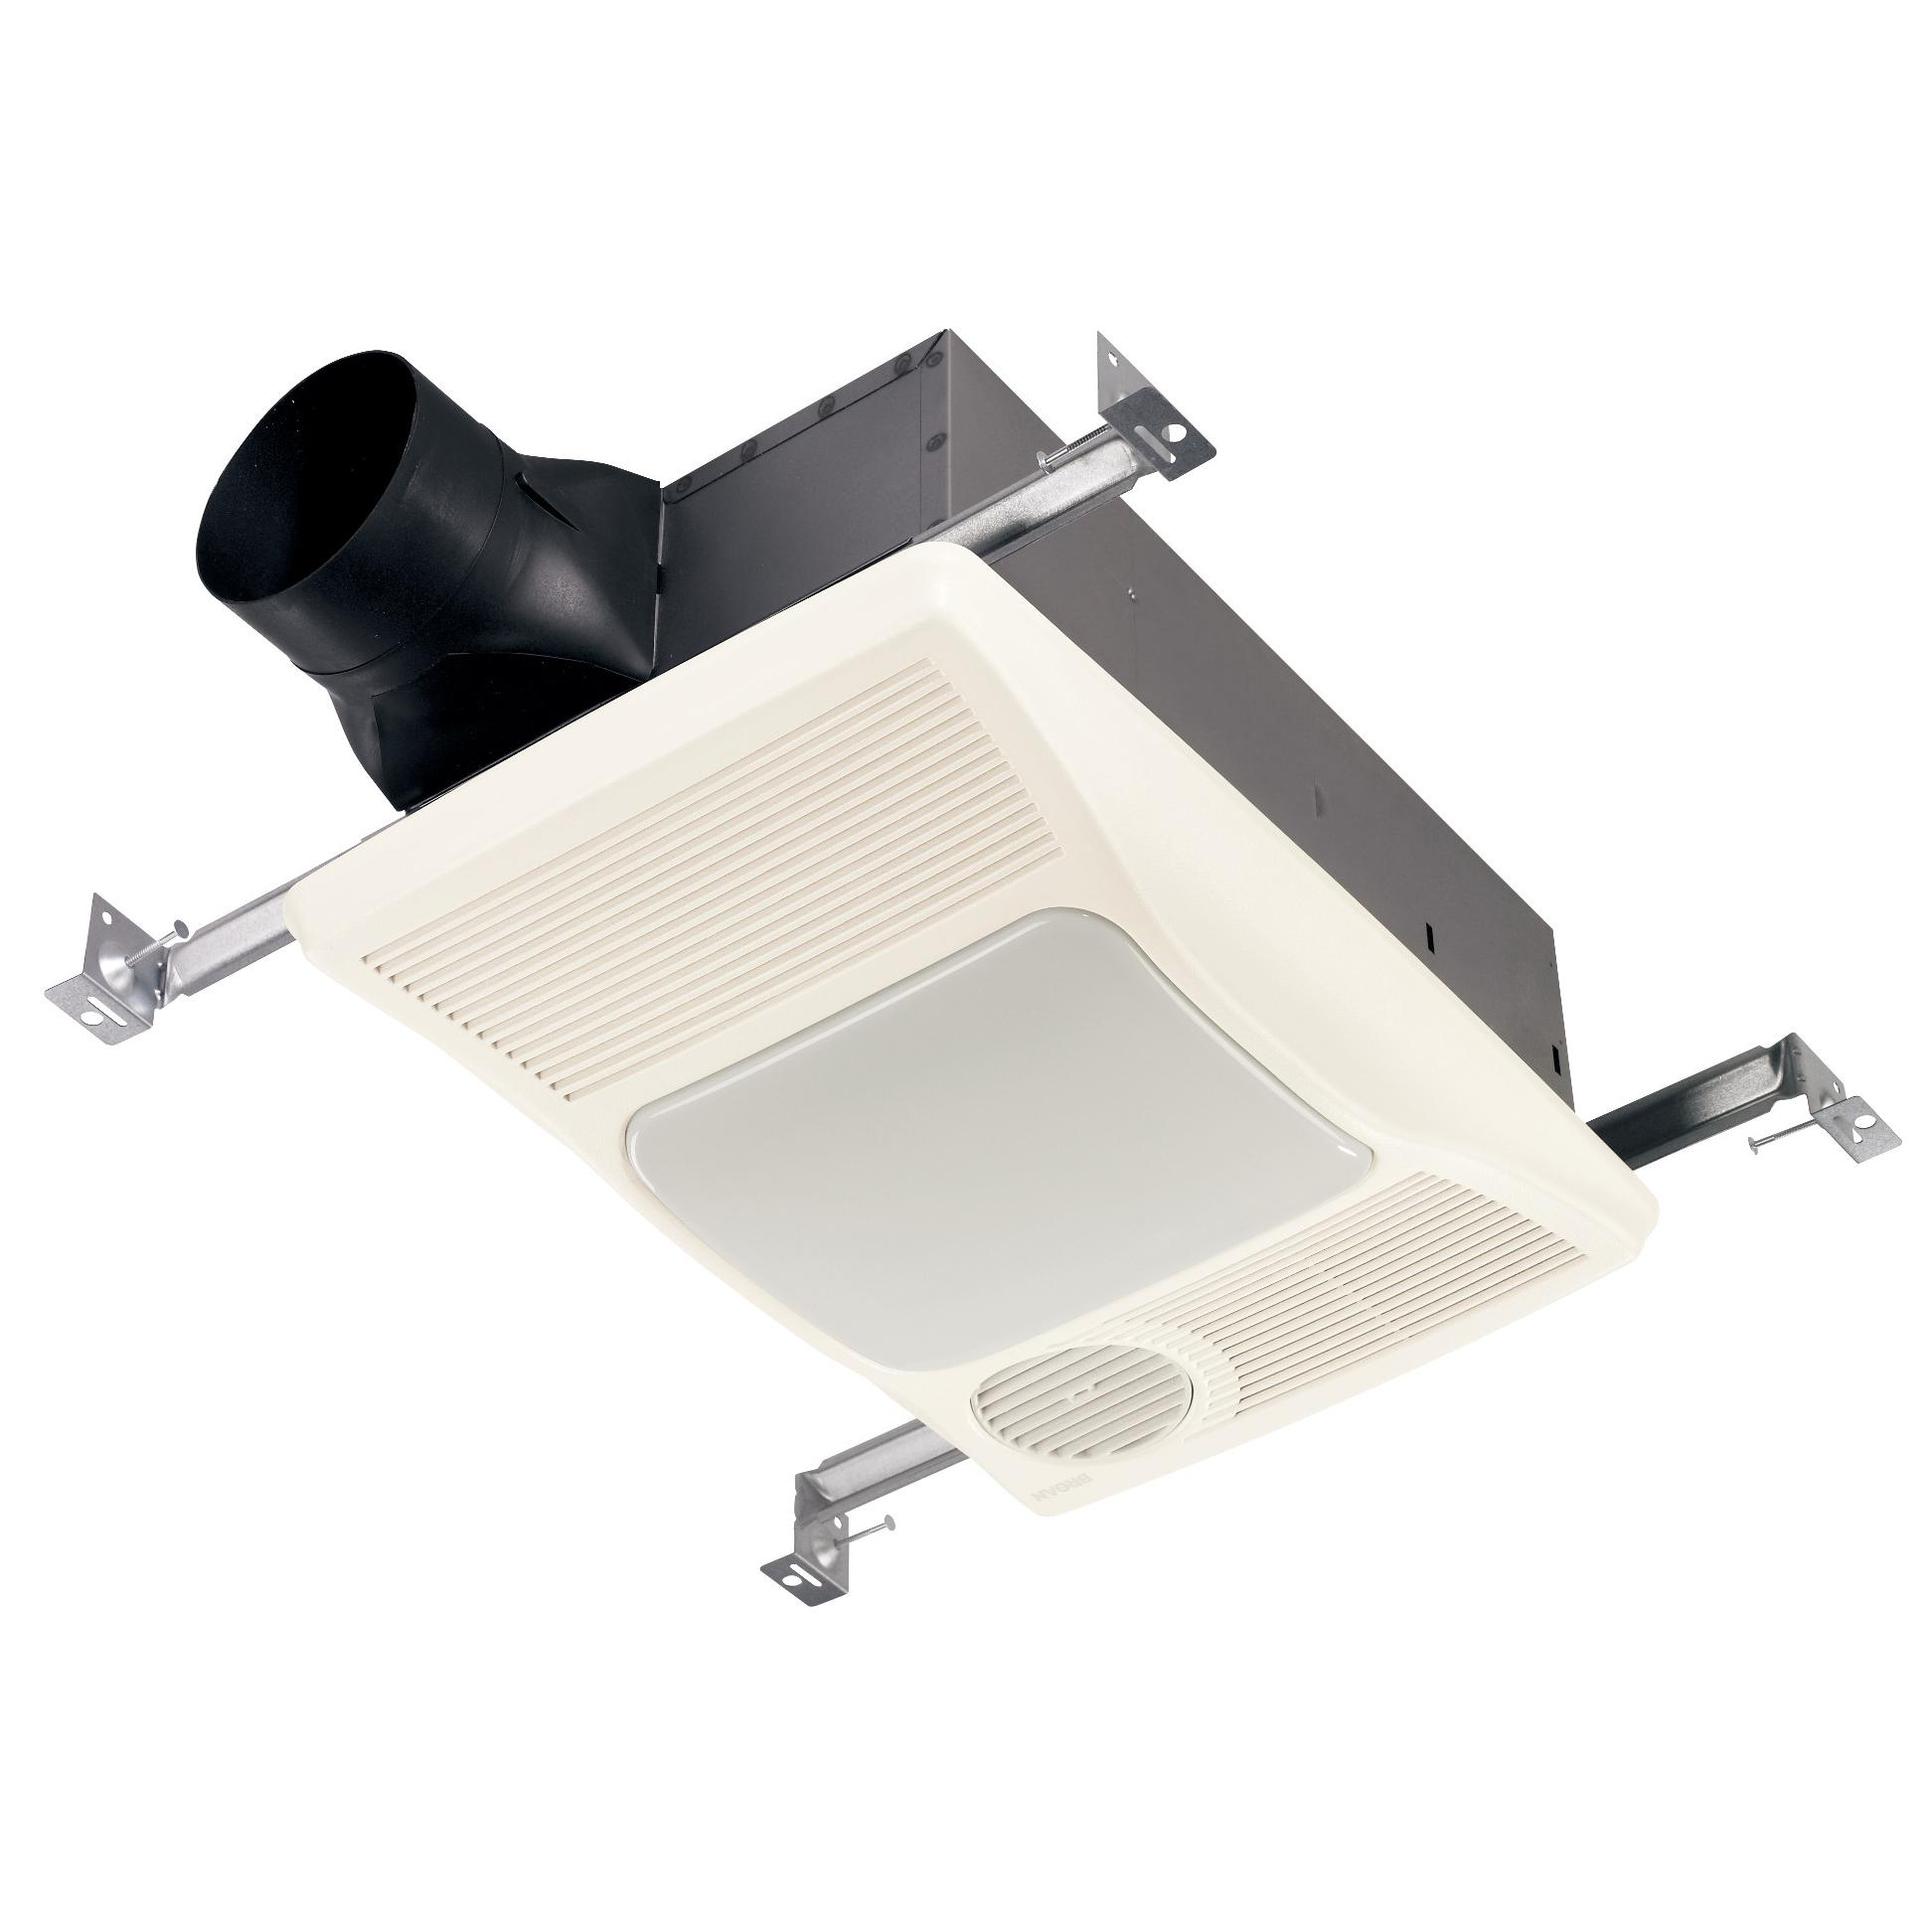 BROAN 100HL Directionally-Adjustable Bath Fan with Heater and Incandescent Light.  sc 1 st  Amazon.com & Amazon.com: Broan 100HL Directionally-Adjustable Bath Fan with ... azcodes.com